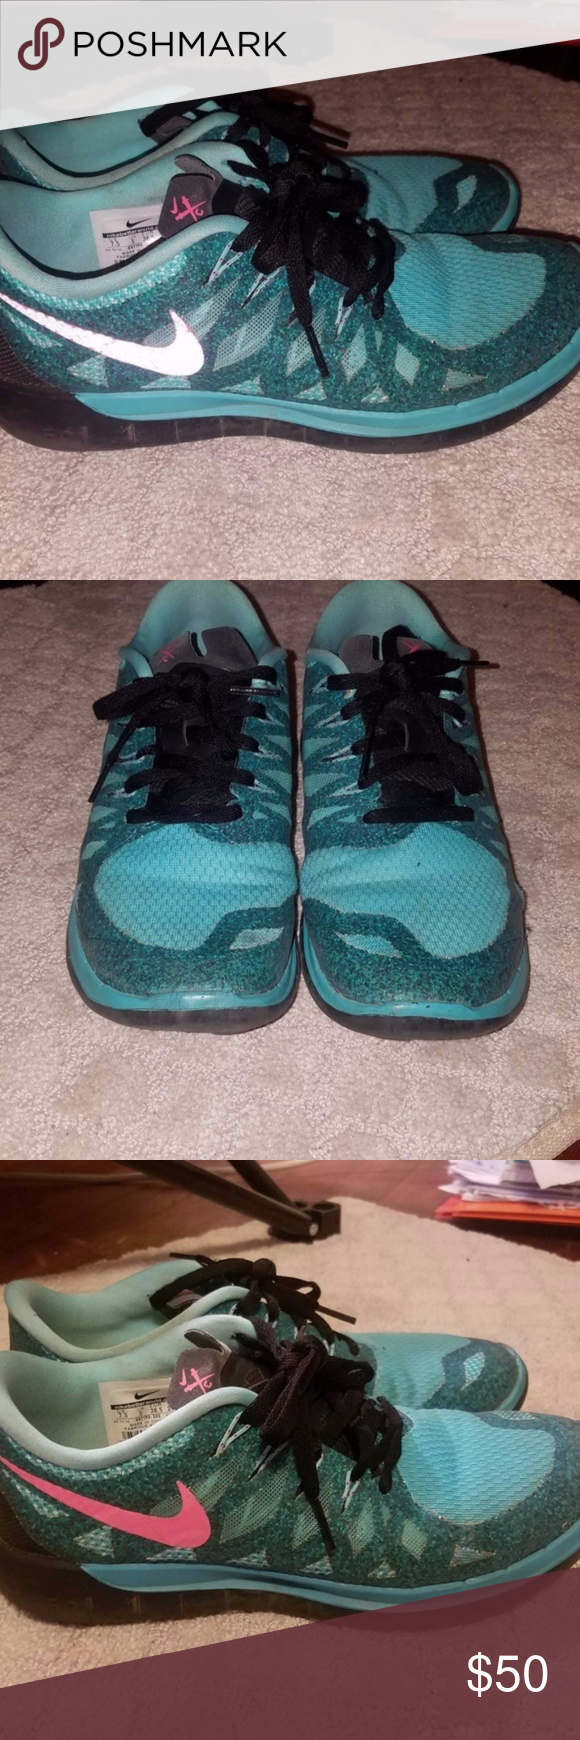 aa753ed64e83c Nike Free 5.0 Running Women s Shoes size 7.5 Nike Free 5.0 Running Women s  Shoes Size 7.5